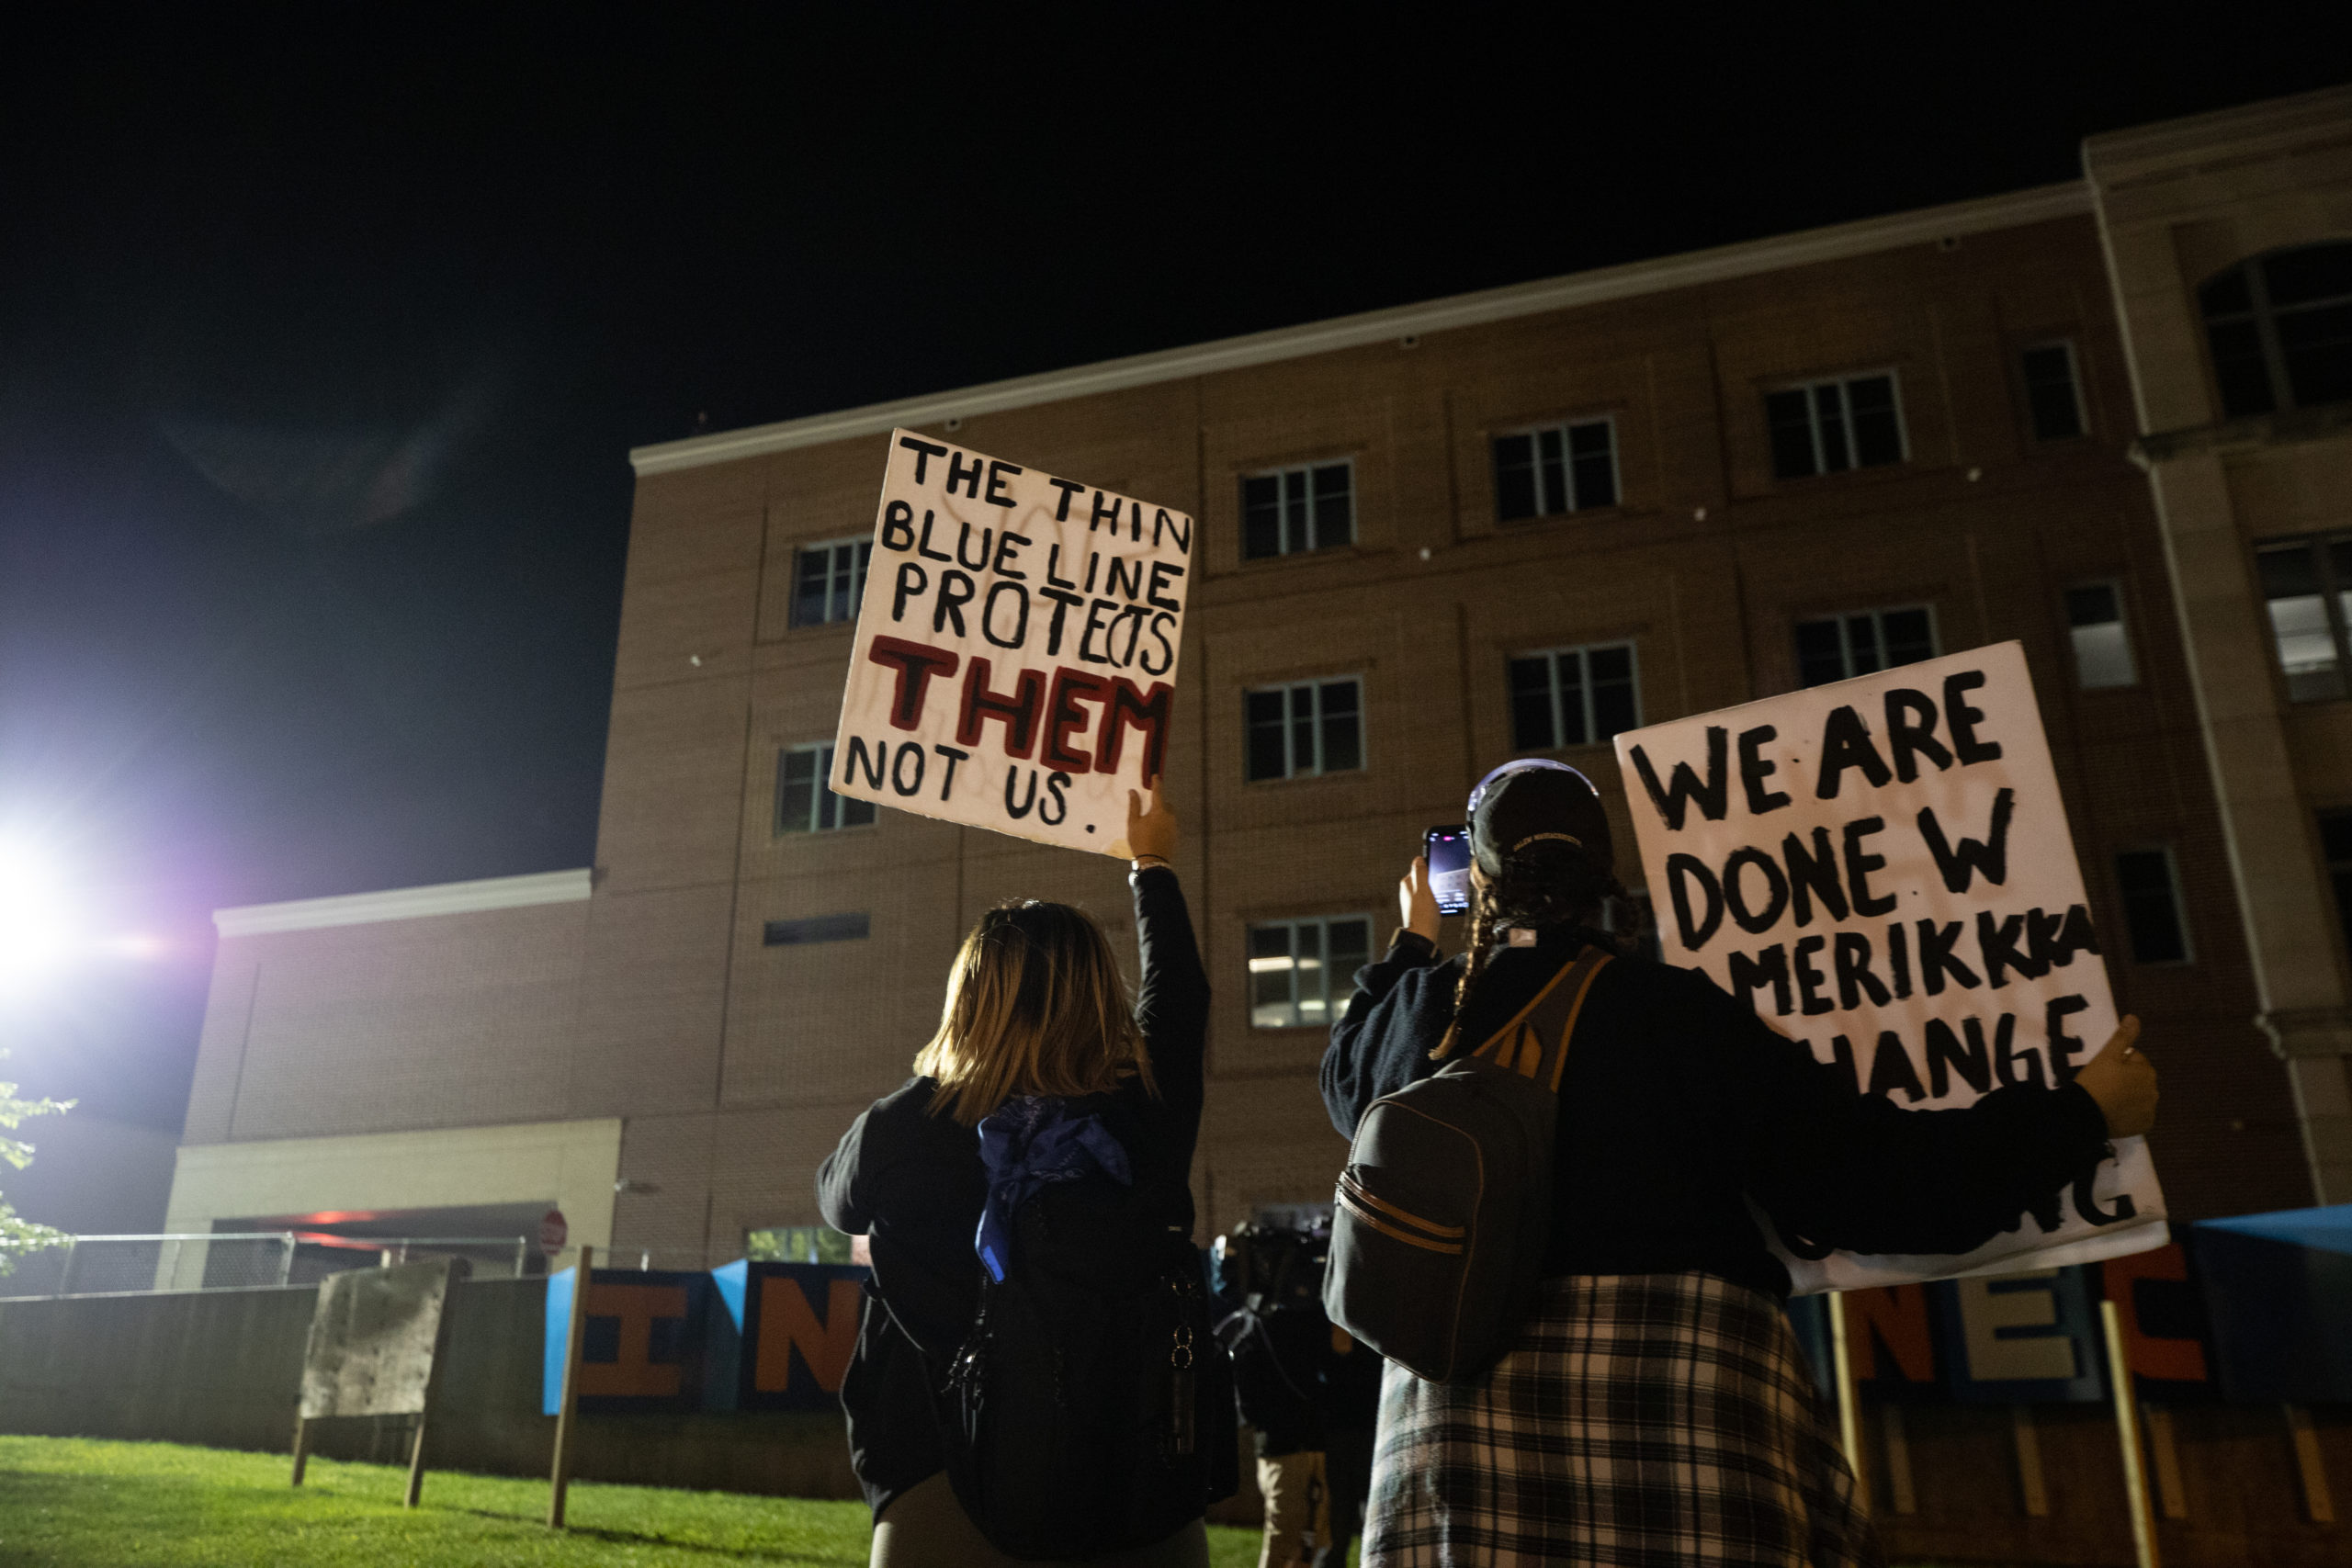 Protesters hold signs and chant anti-police rhetoric at the Lancaster Bureau of Police building. (Photo - Kaylee Greenlee / Daily Caller News Foundation)